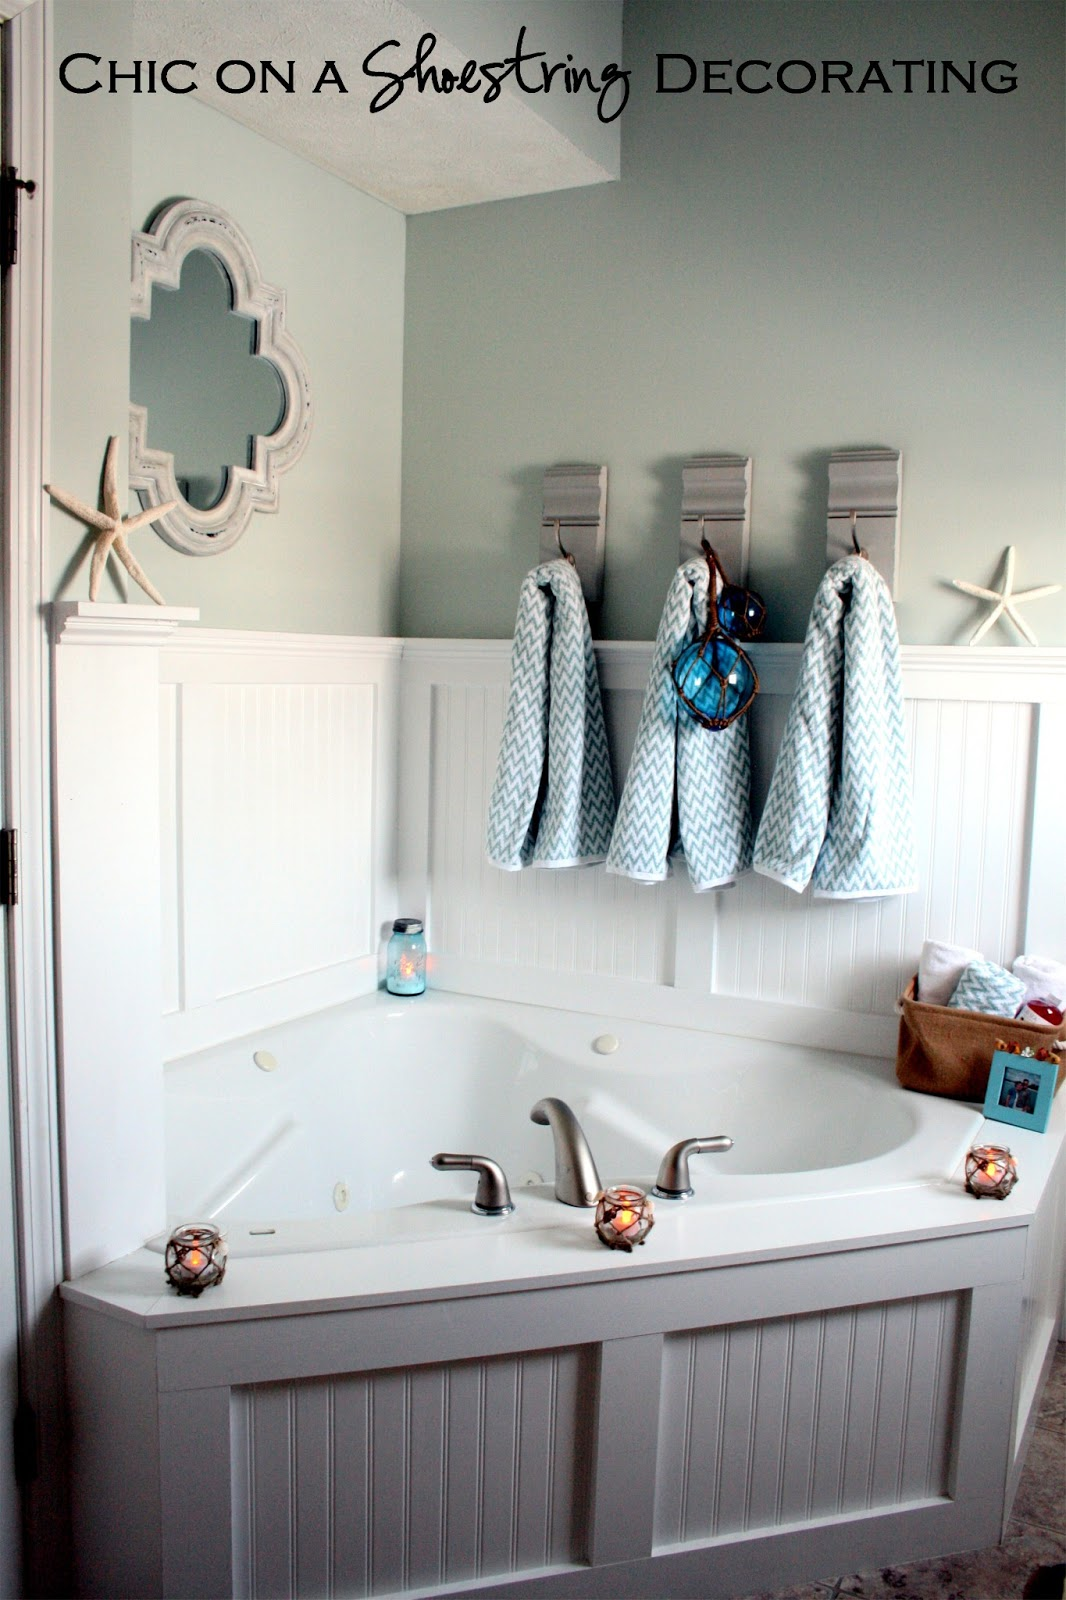 Chic on a shoestring decorating beachy bathroom reveal for Coastal bathroom design